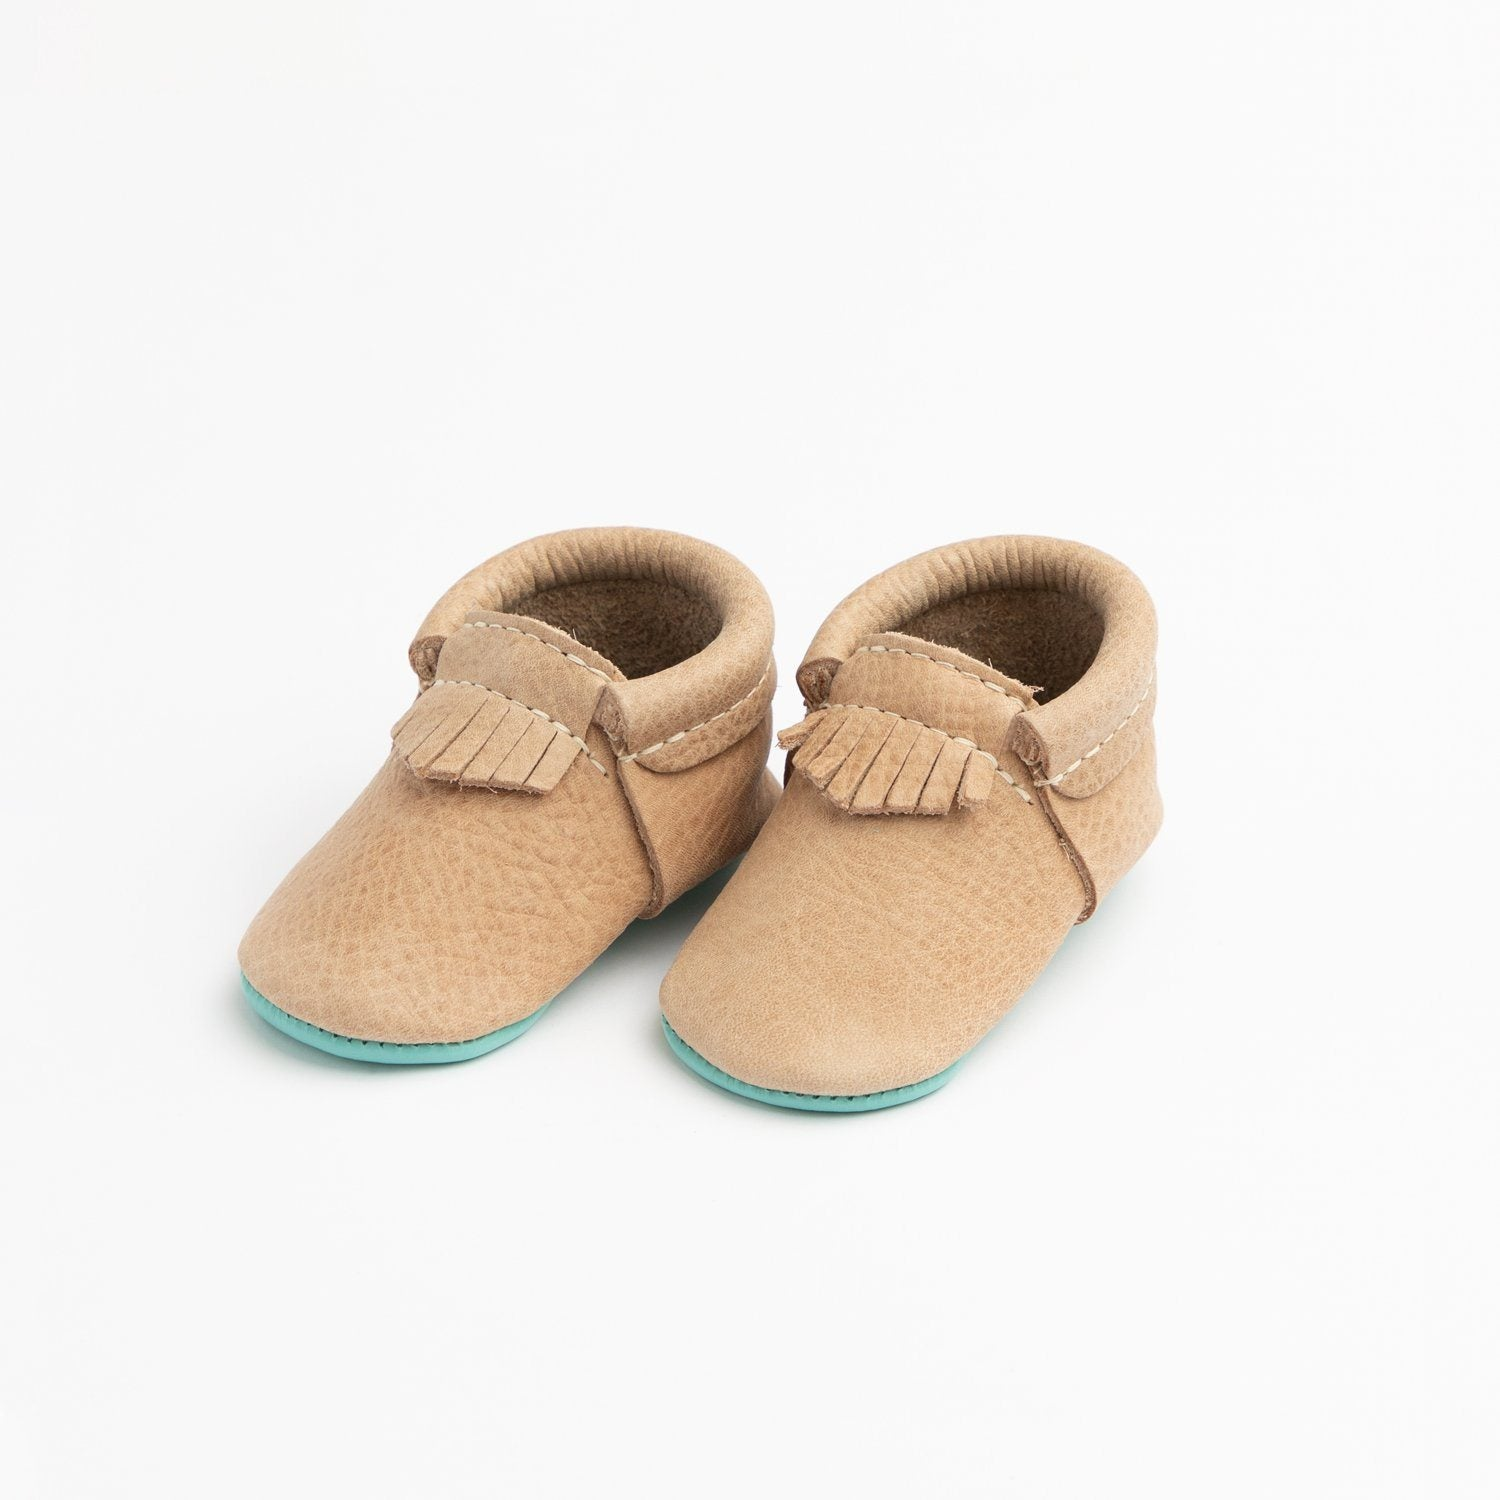 Weathered Brown with Robin's Egg City Mocc City Moccs Soft Soles